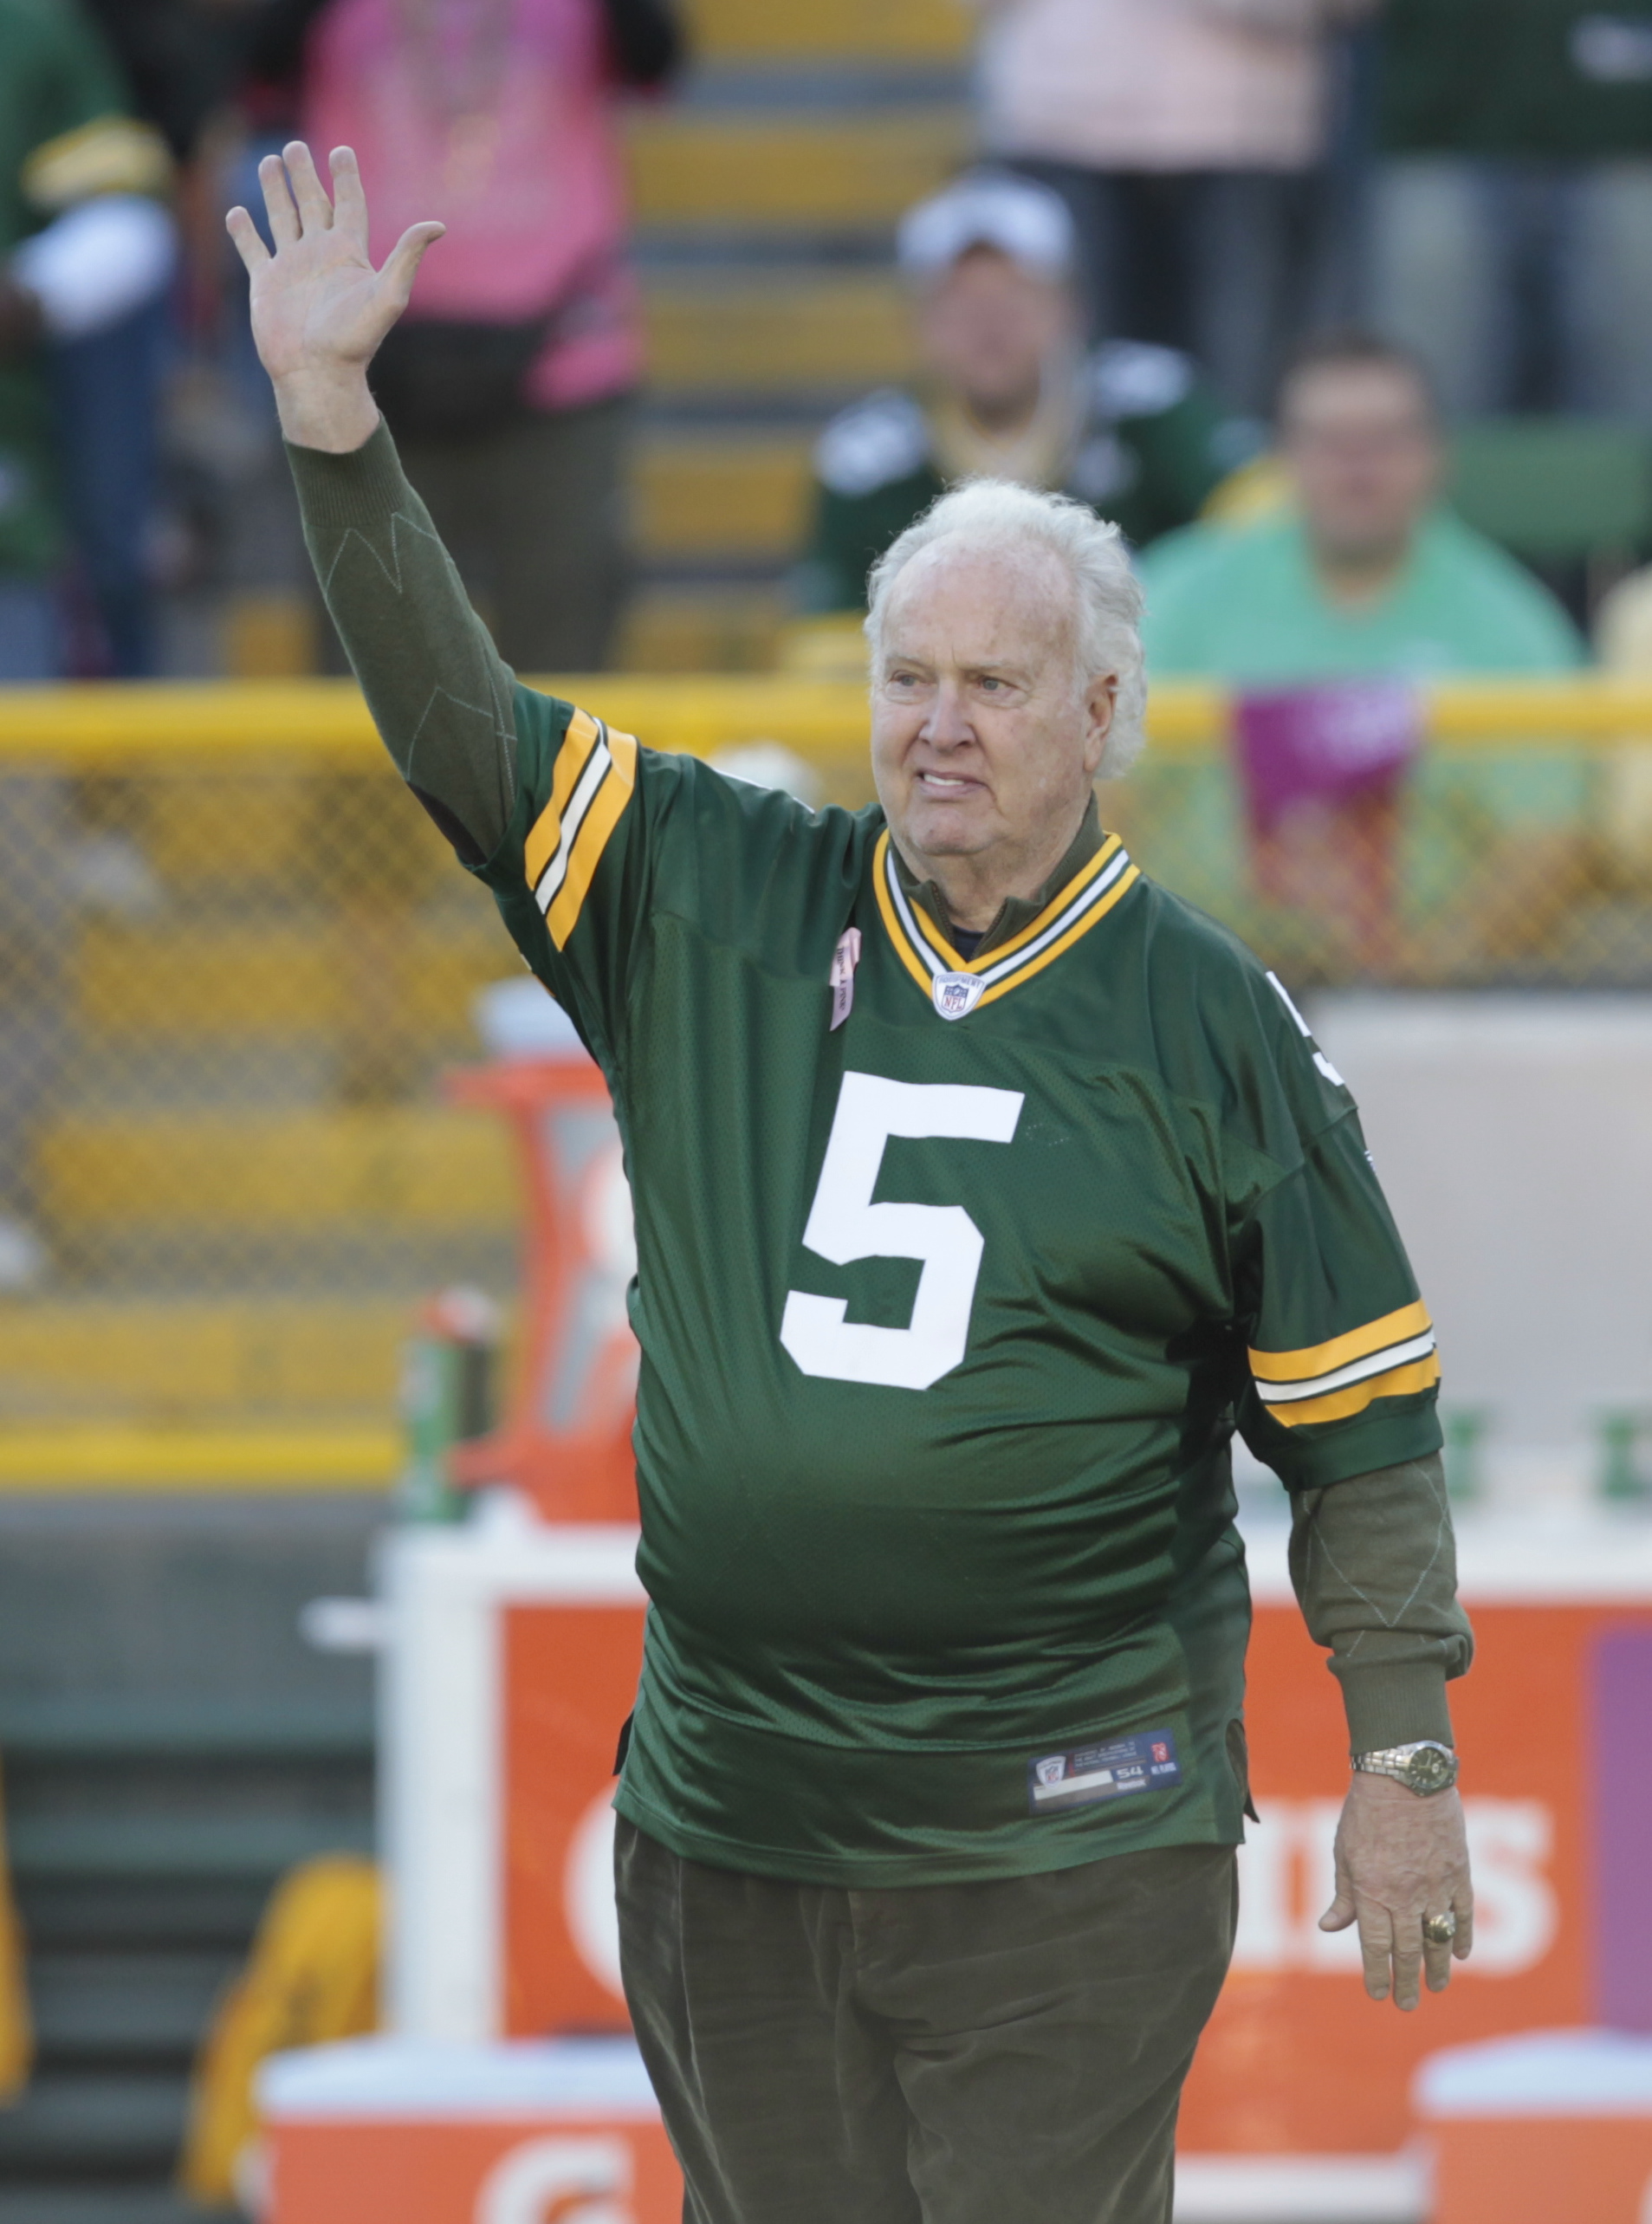 Former Green Bay Packer Paul Hornung waved to the crowd during the second half of an NFL football game between the Green Bay Packers and Denver Broncos Sunday, Oct. 2, 2011, in Green Bay, Wis. (AP Photo/Mike Roemer)